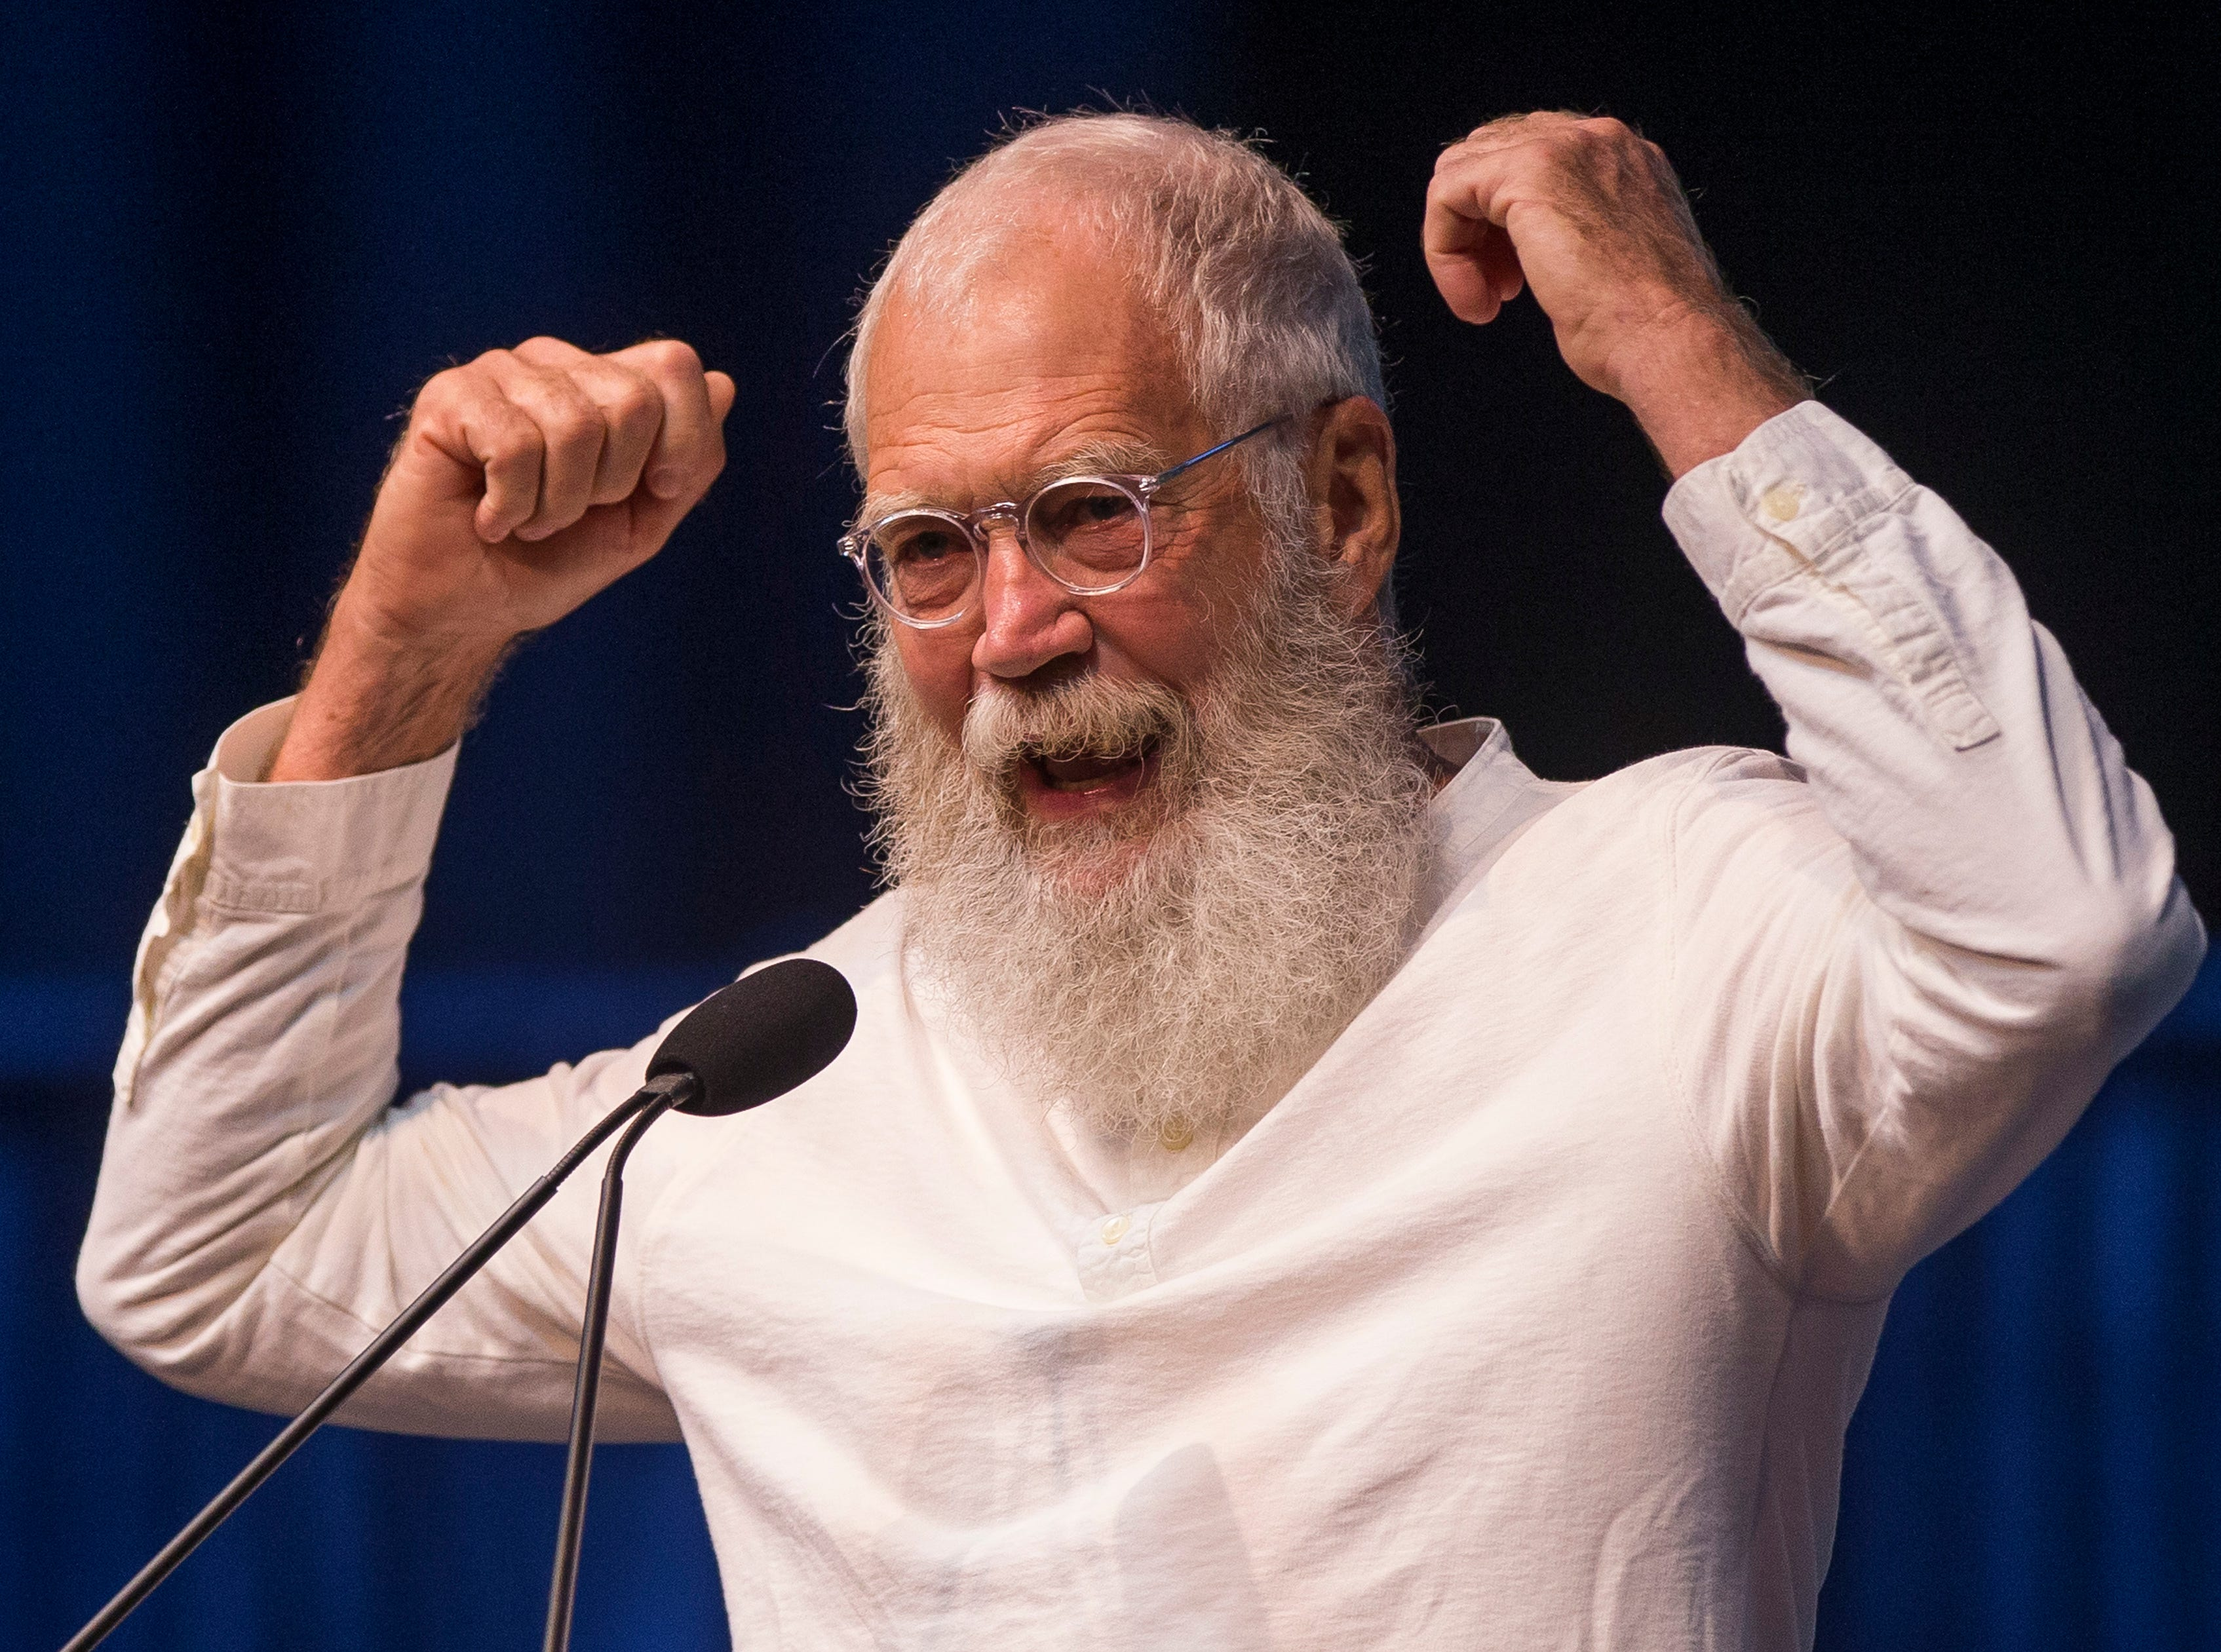 Former late night television host David Letterman speaks during the opening ceremony event for the Jimmy & Rosalynn Carter Work Project on Sunday, Aug. 26, 2018, inside the University of Notre Dame's Purcell Pavilion in South Bend, Ind.